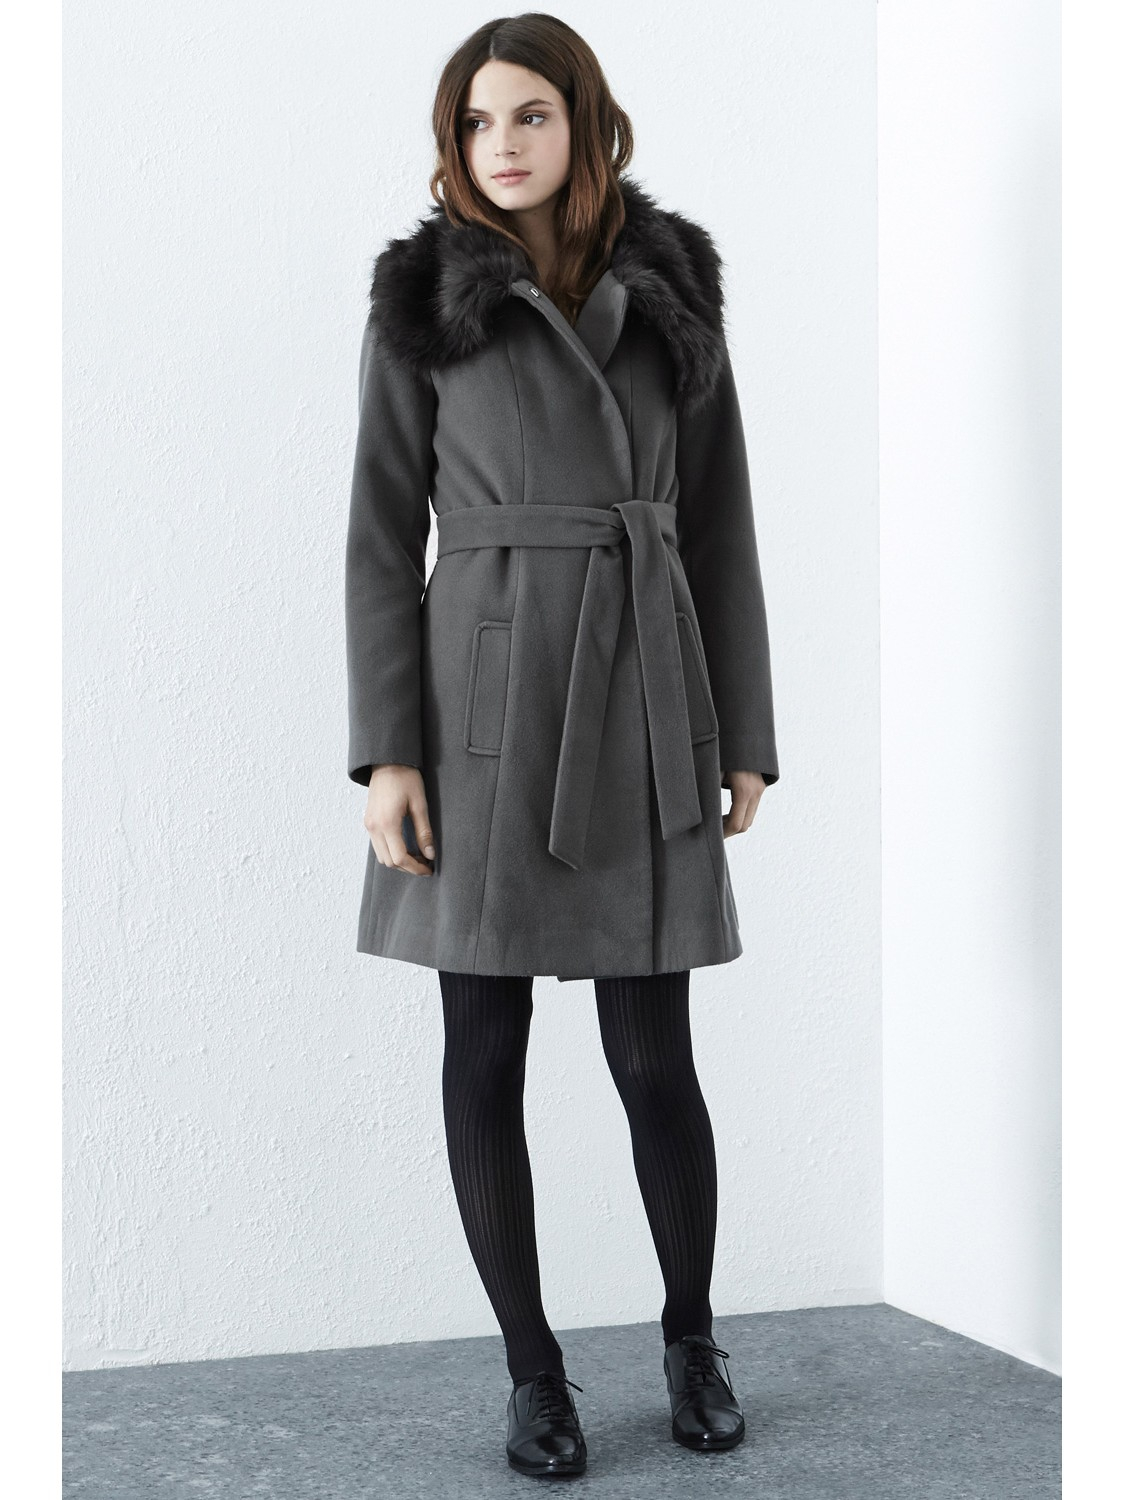 Warehouse Grey Belted Faux Fur Coat - Tradingbasis